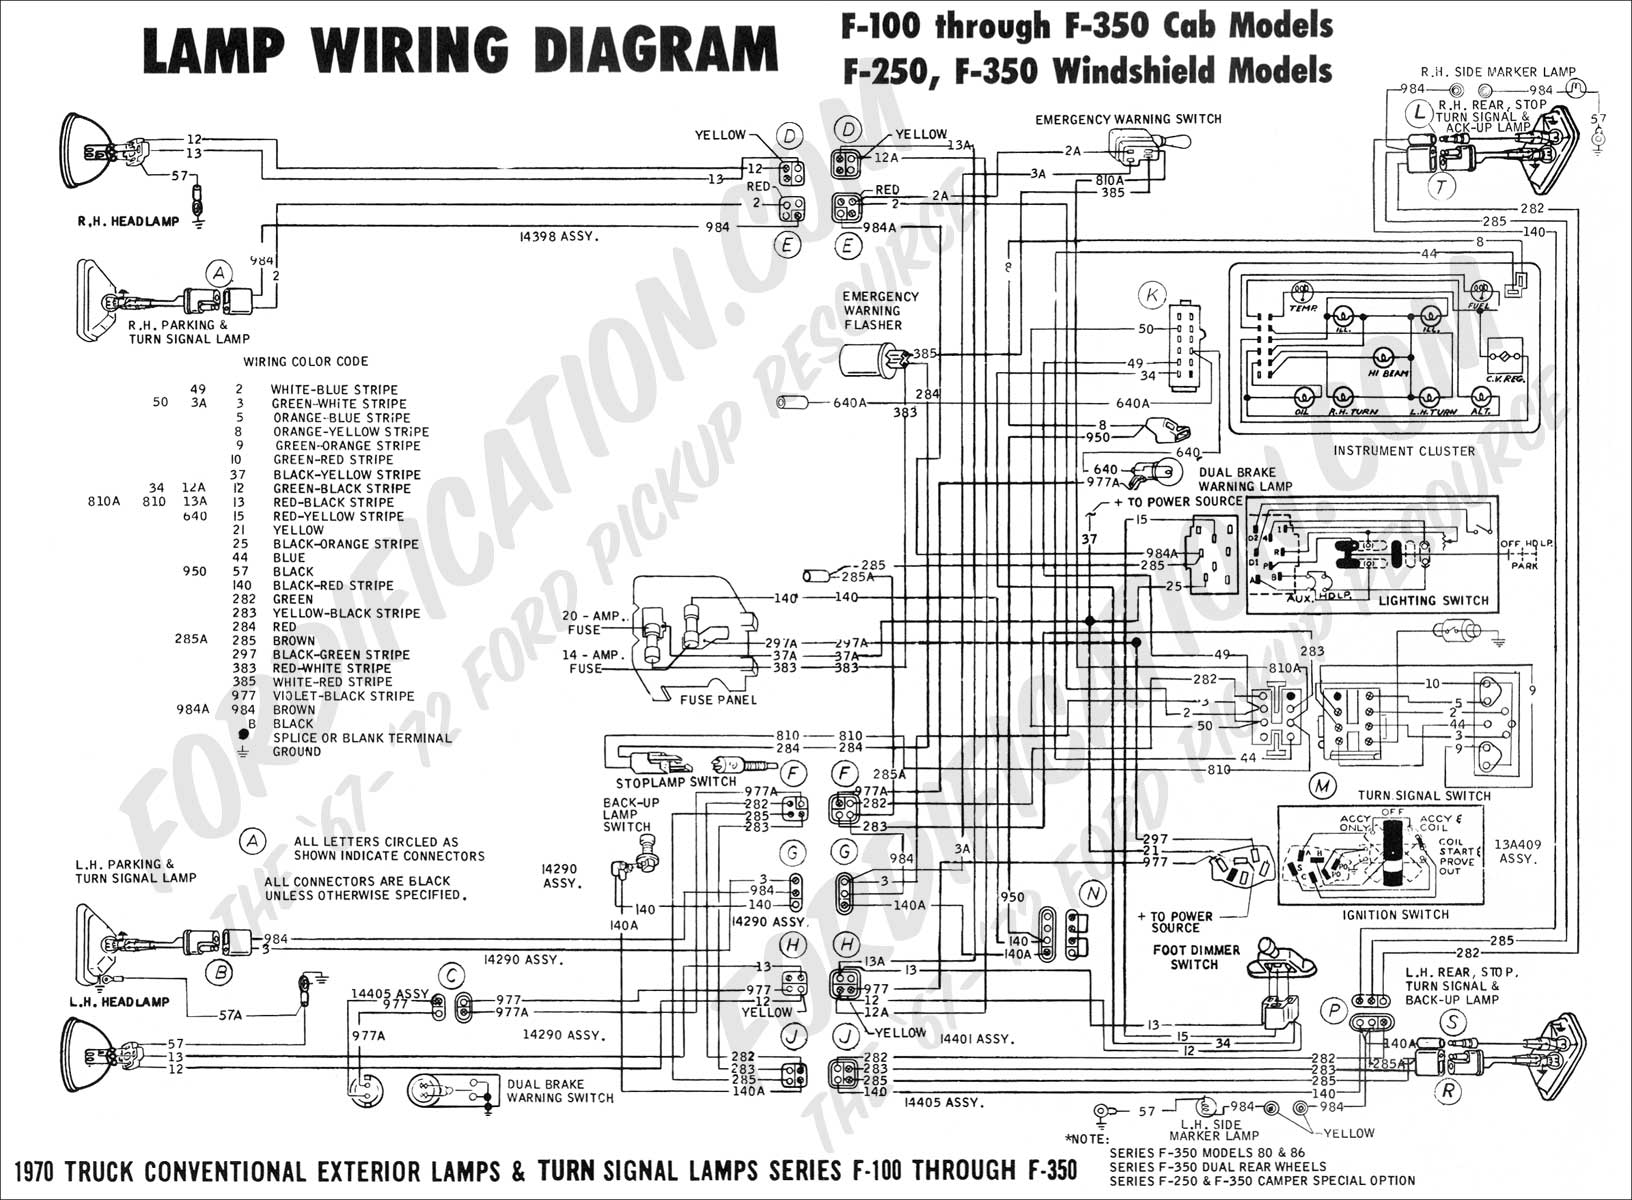 03 F250 Fuse Diagram Wiring Library Electrical Panel Youtube Free Download Diagrams Ford Truck Technical Drawings And Schematics Section H 1999